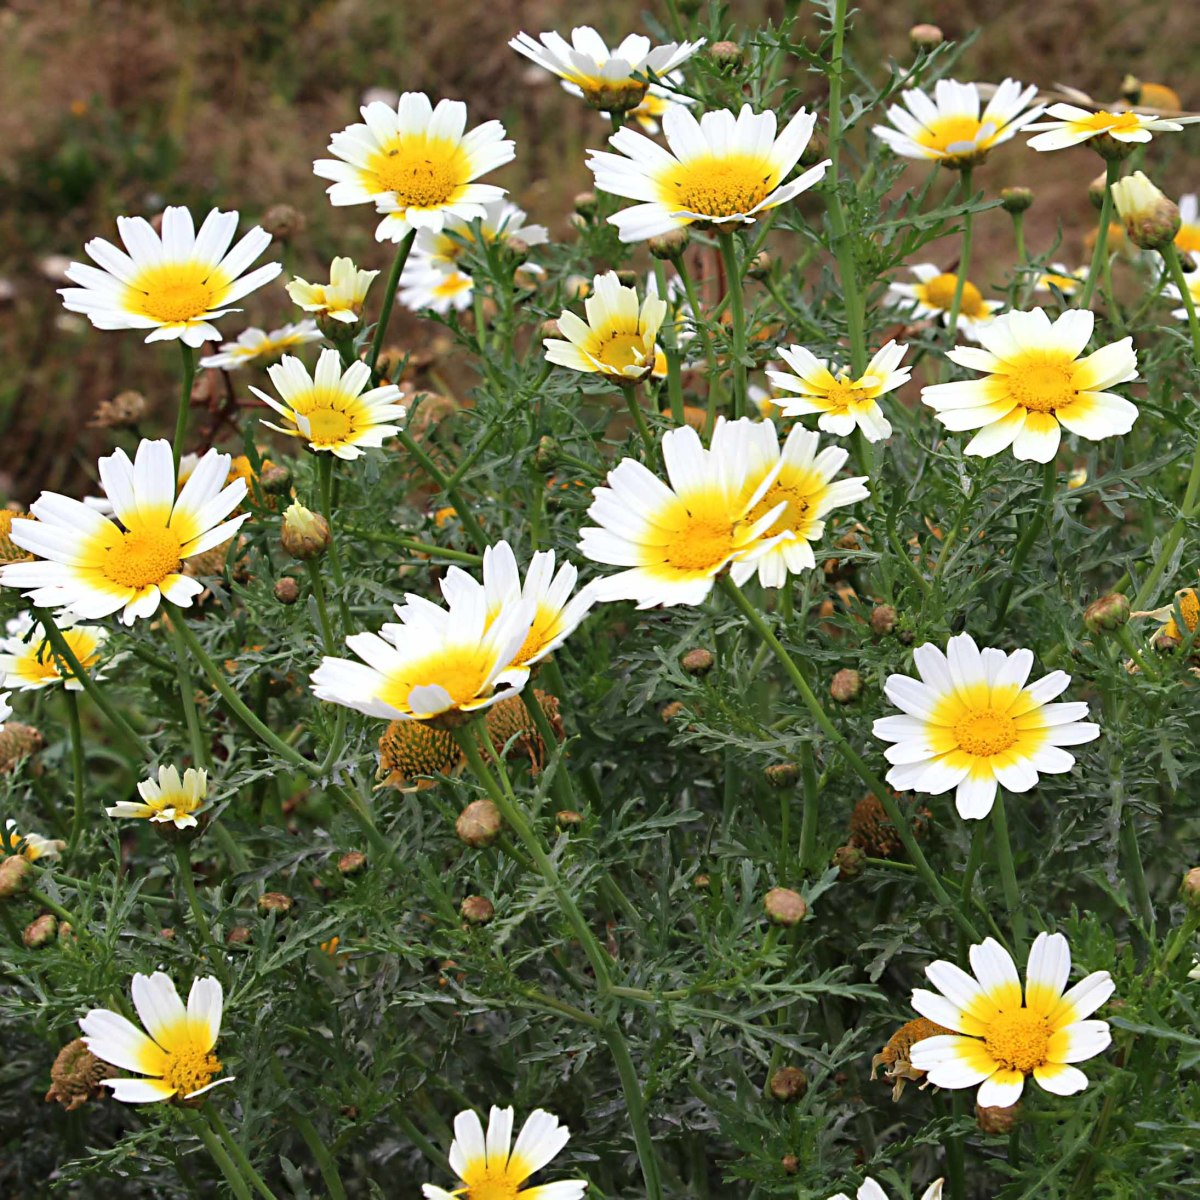 Daisies growing near the Cueva del Llano in La Olivia in the north of the island